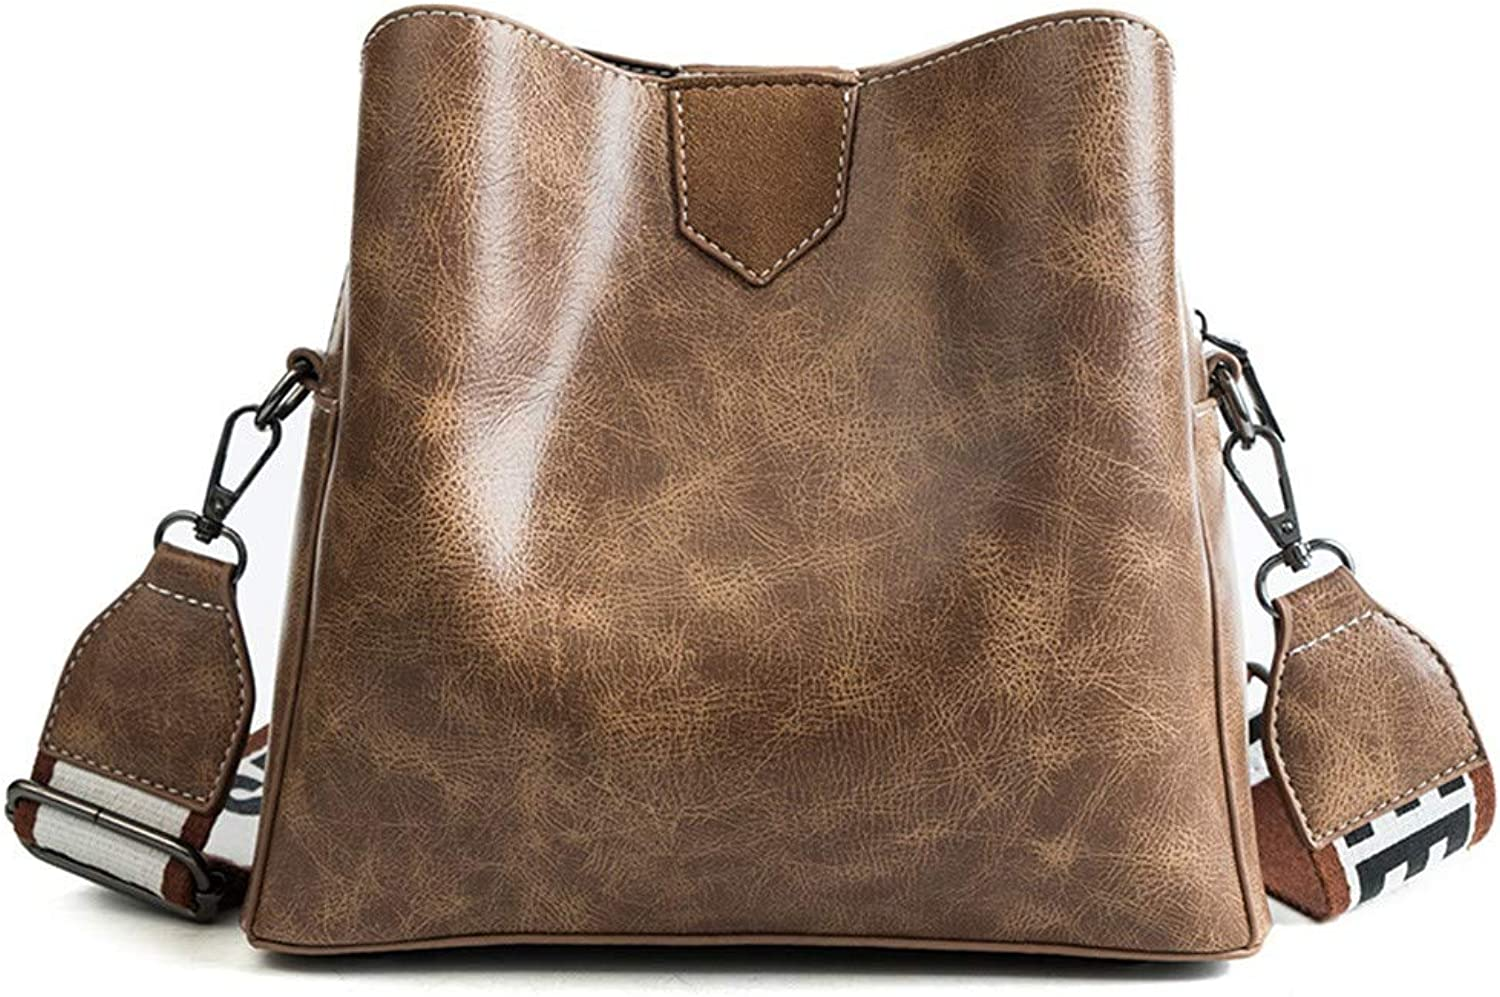 H-M-STUDIO New Style Autumn and Winter Fashionable Air Bucket Wide Shoulder Strap Satchel Brown 24  22  10Cm